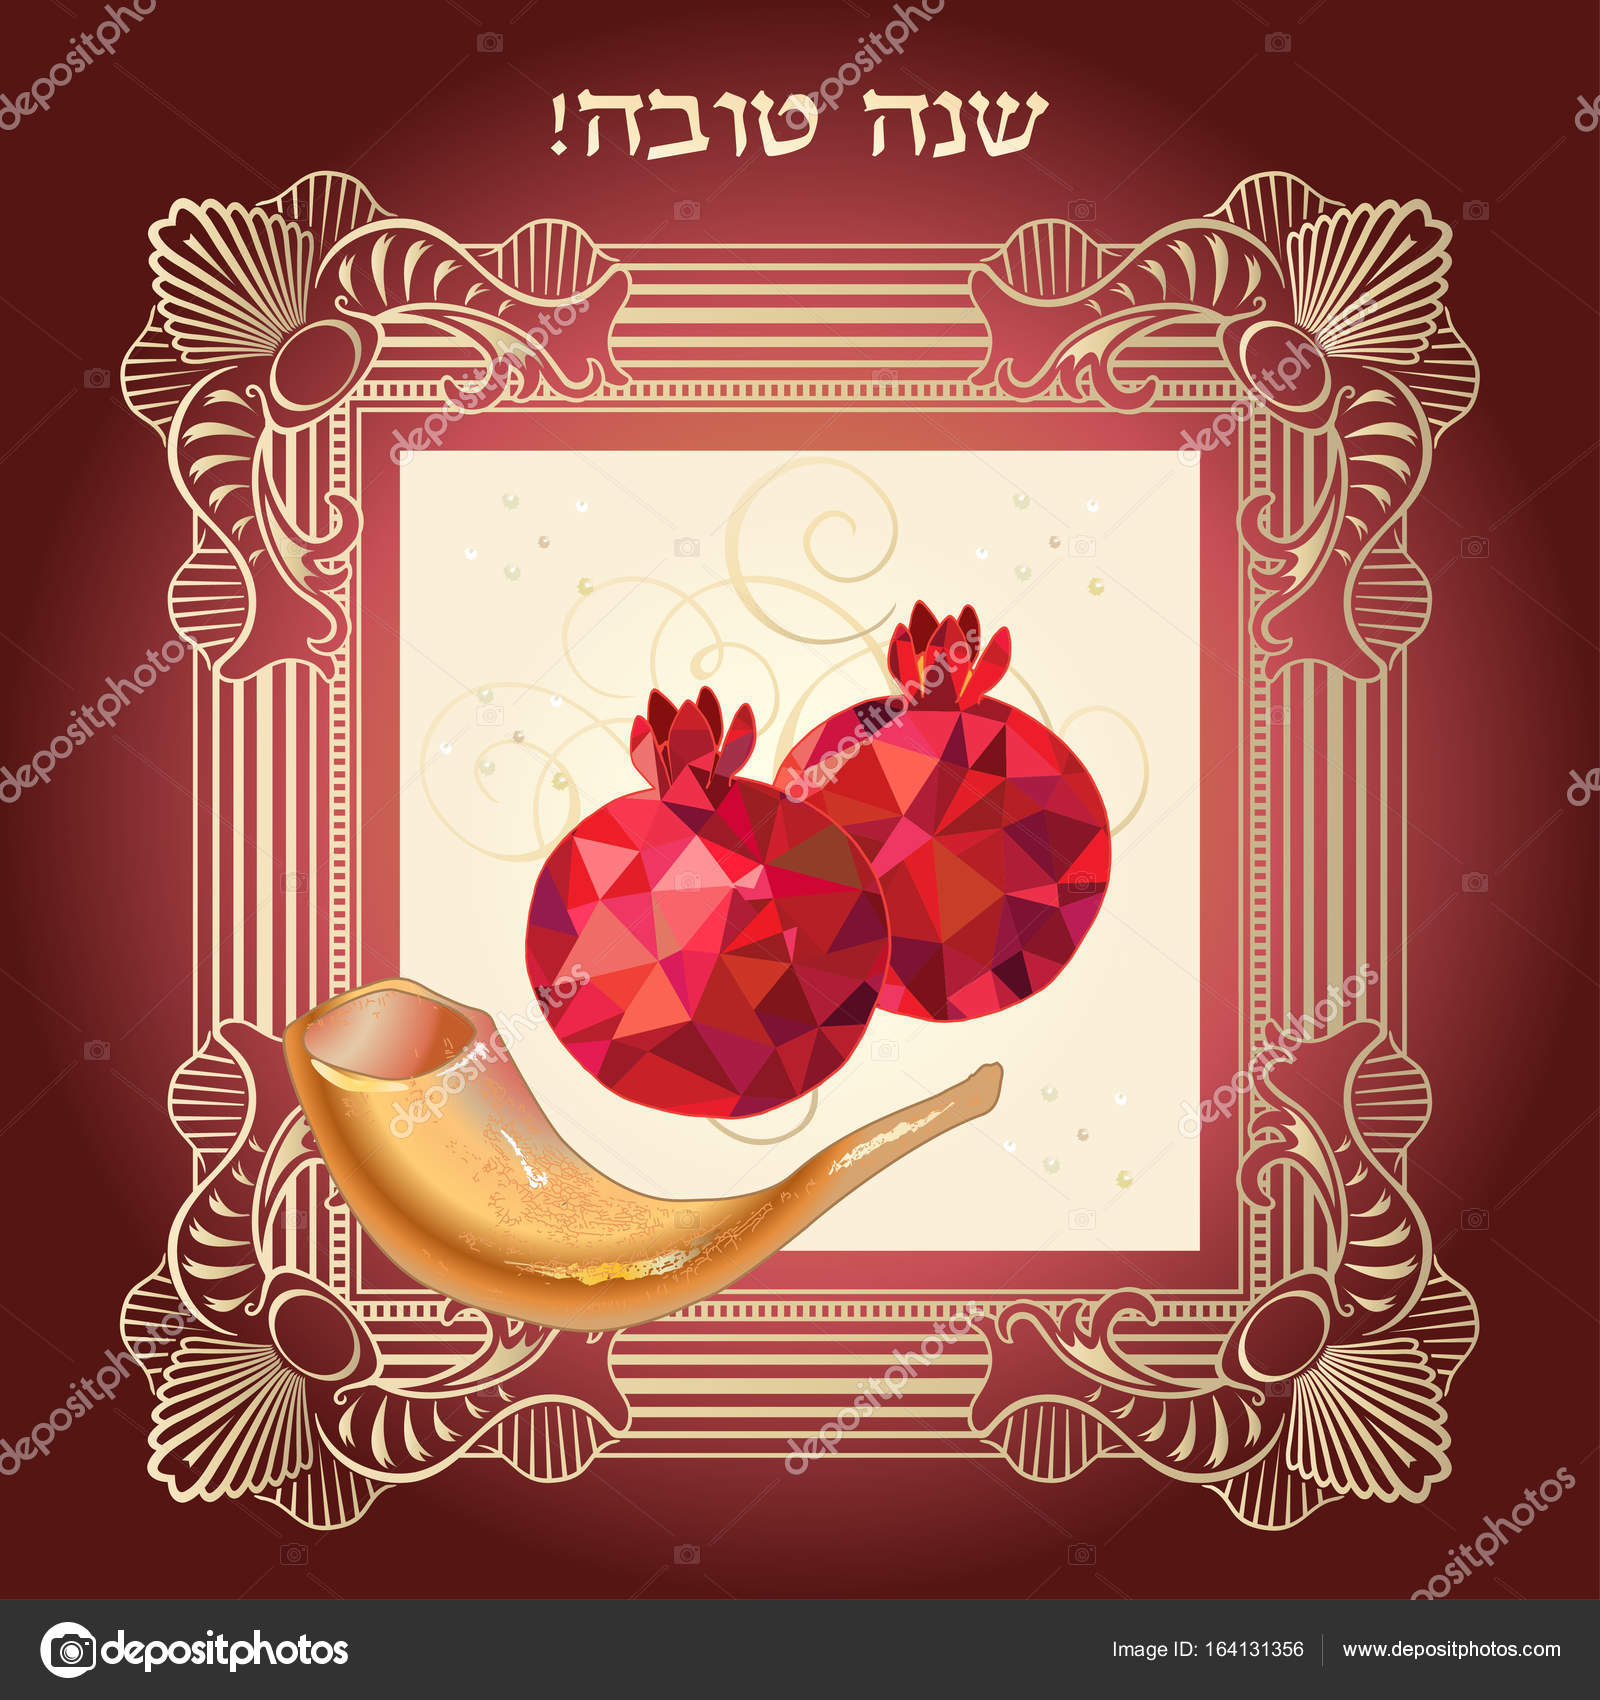 Shana tova rosh hashana card jewish new year greeting text shana rosh hashana card jewish new year greeting text shana tova on hebrew have a sweet year happy new year honey red pomegranates fruit shofar leaves kristyandbryce Choice Image